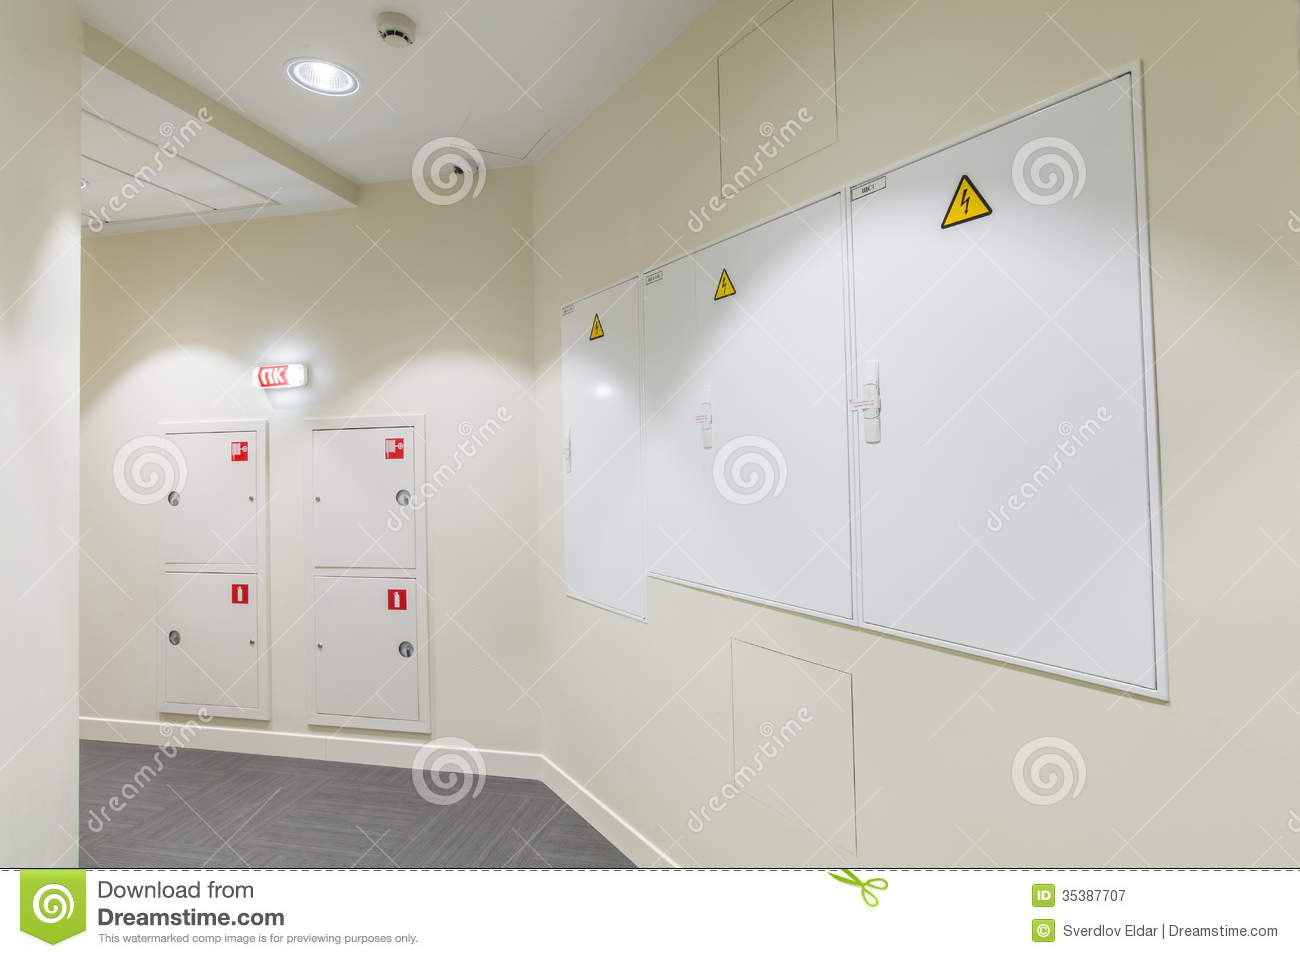 office interior stock image image of dorm, direction 35387707 fuse box location office interior corridor with light colored walls and fire box fuse box